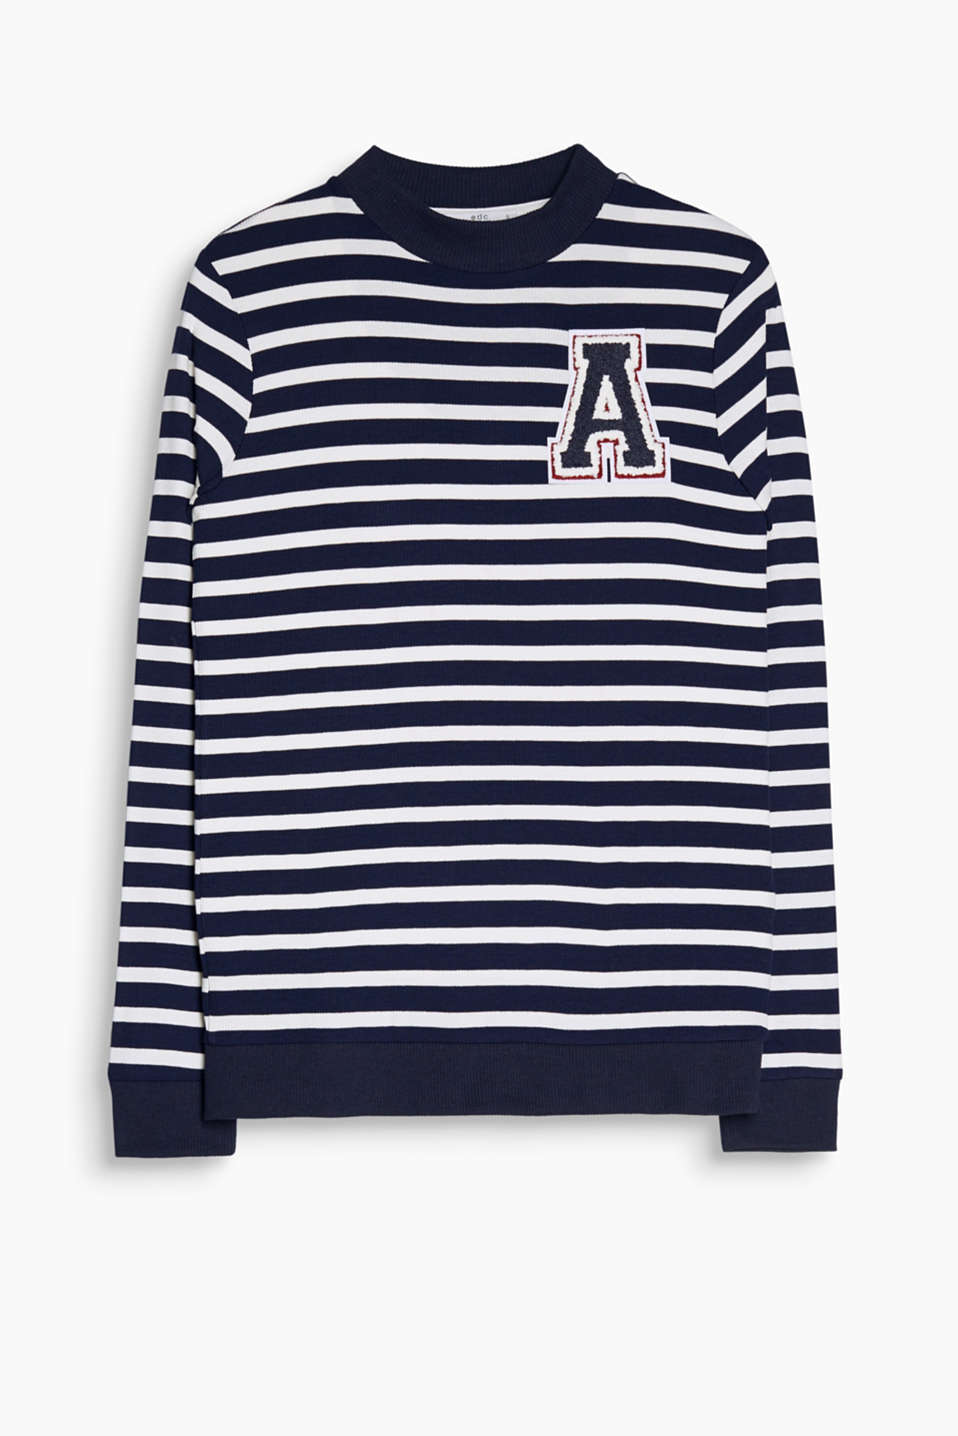 Blikfang i fritiden: stribet sweater i ribjersey med patch i college style